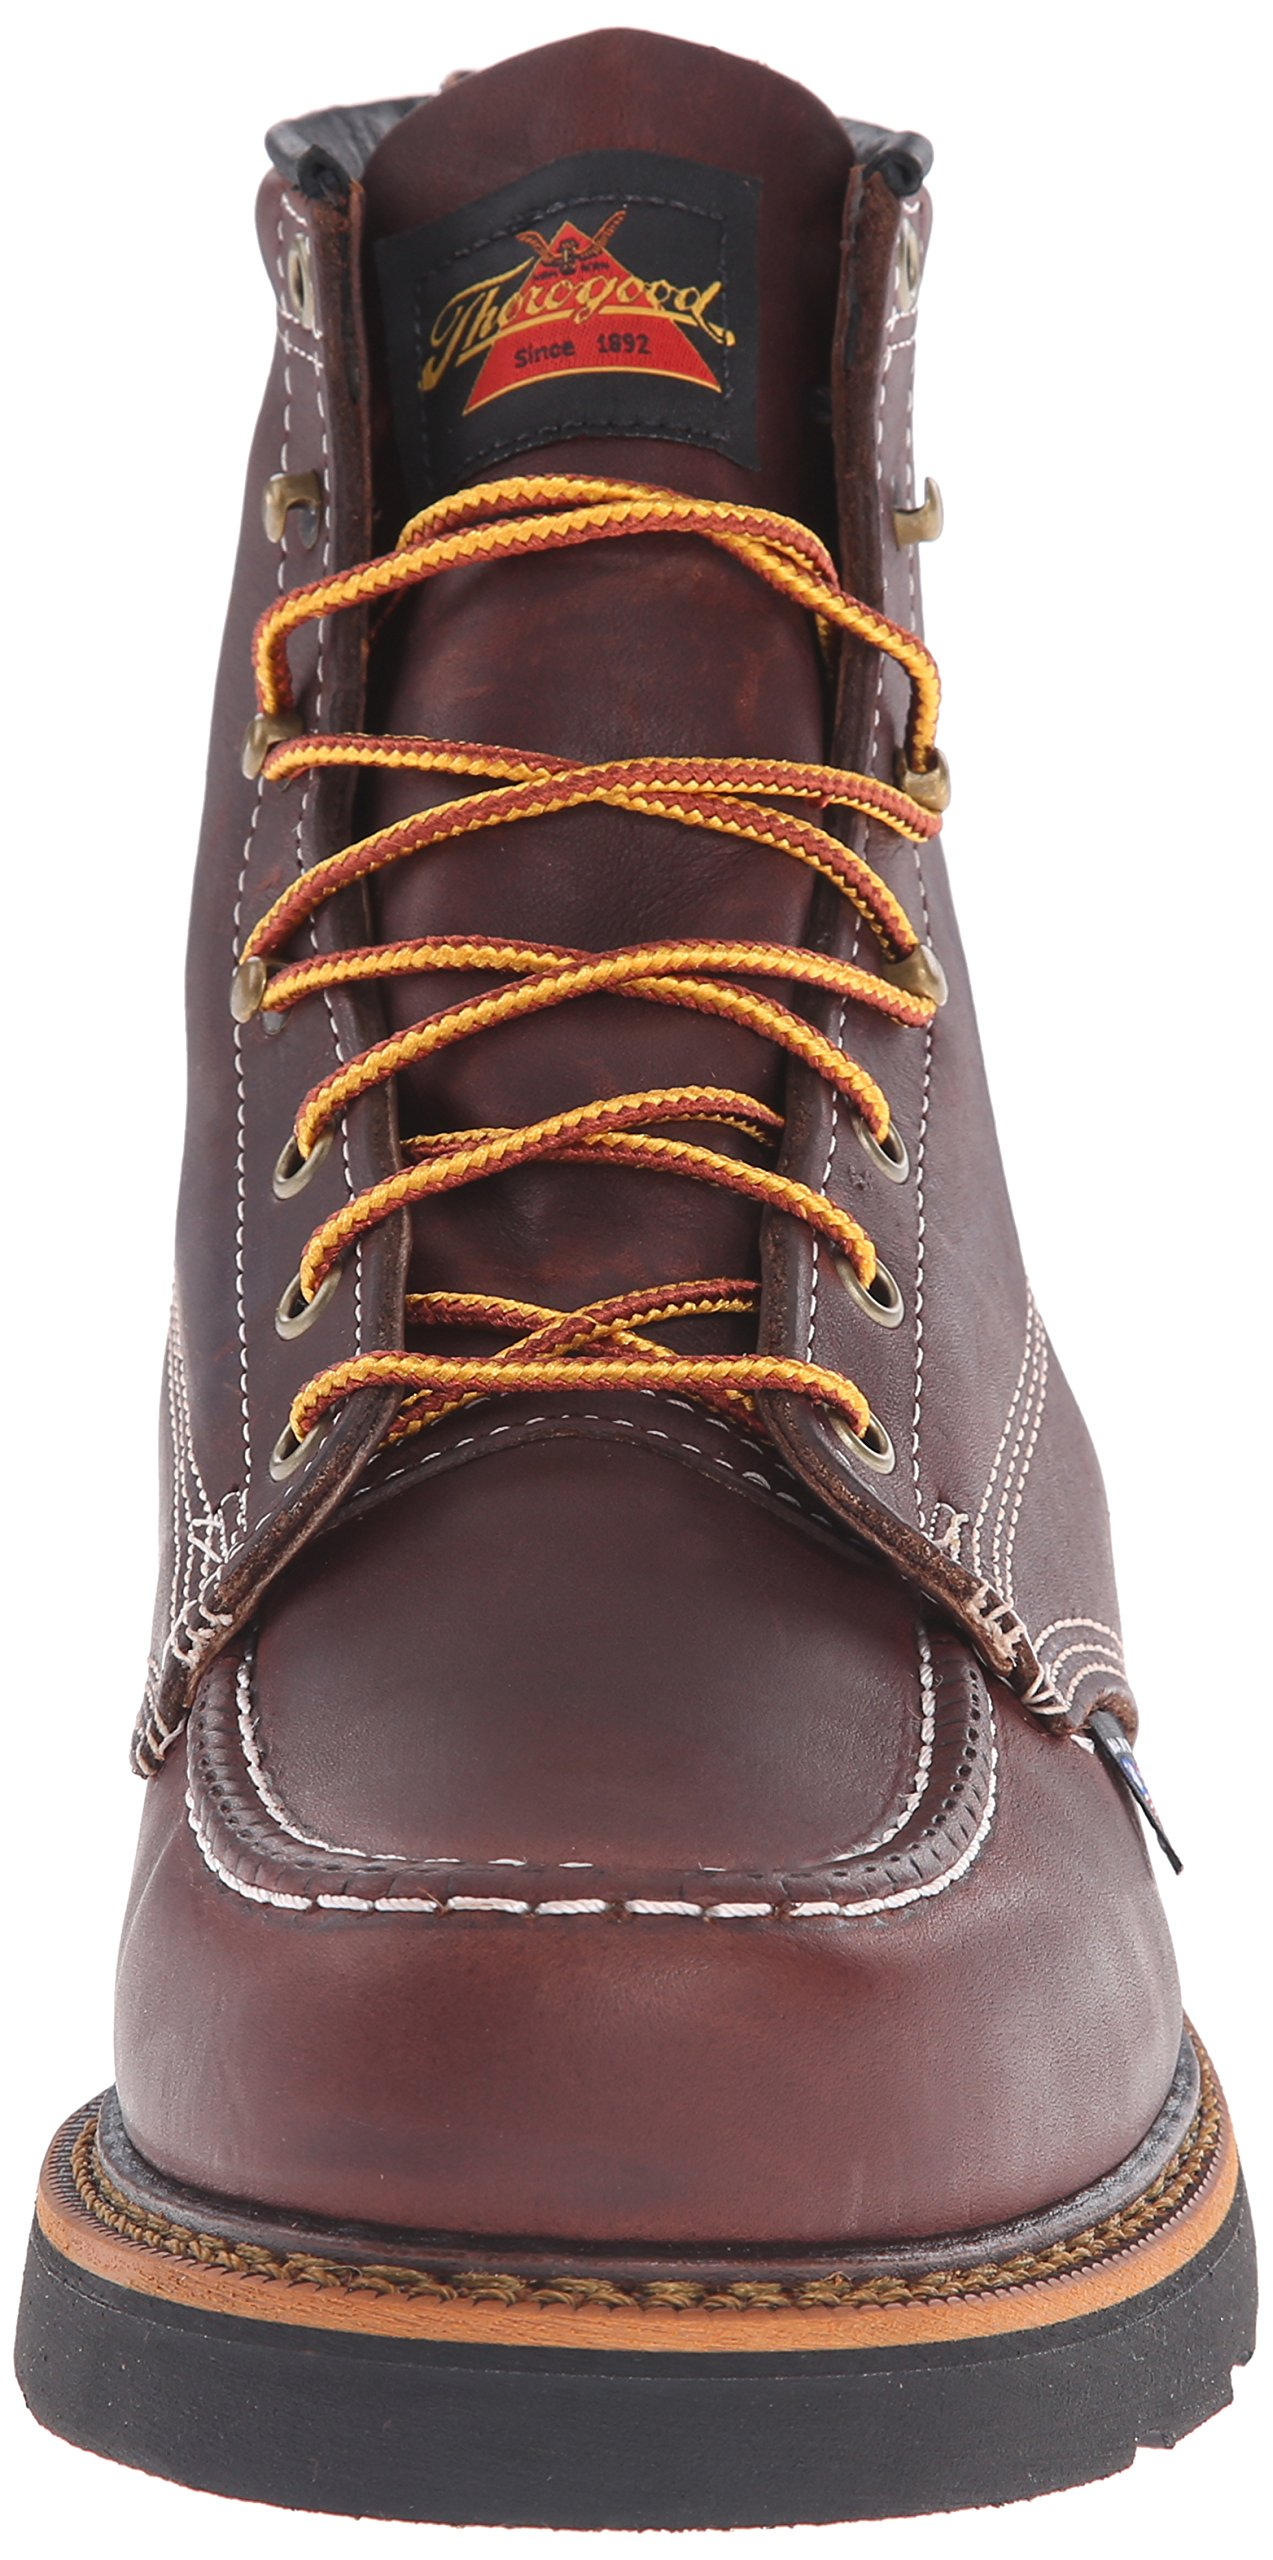 Thorogood-American-Heritage-Men-039-s-6-034-Moc-Toe-Max-Wedge-Non-Safety-Boots thumbnail 9